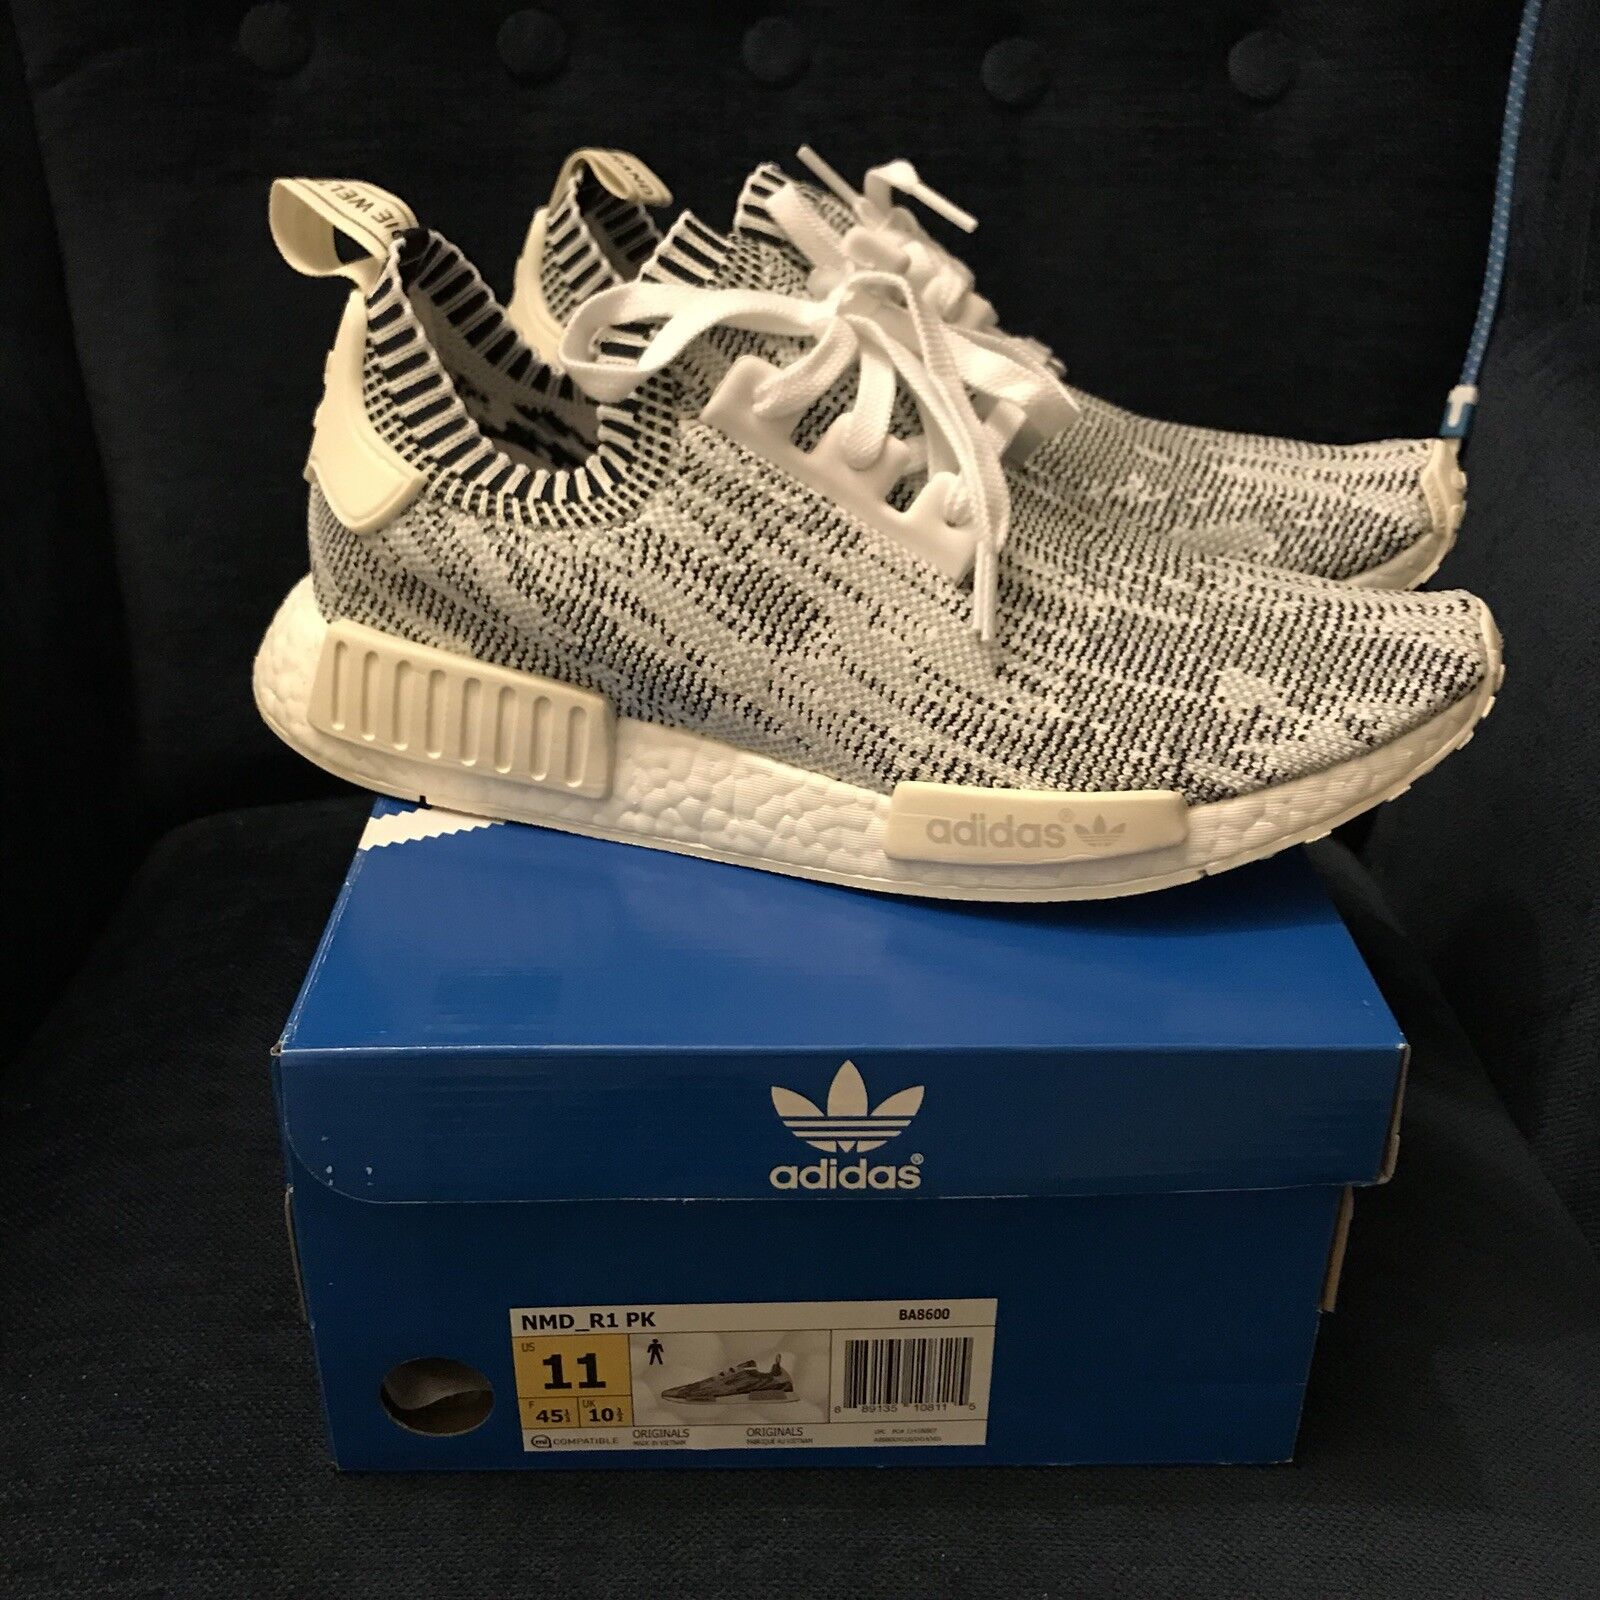 Adidas NMD Boost R1 PK Grey Camo White Camo Pack BA8600 New Size 11